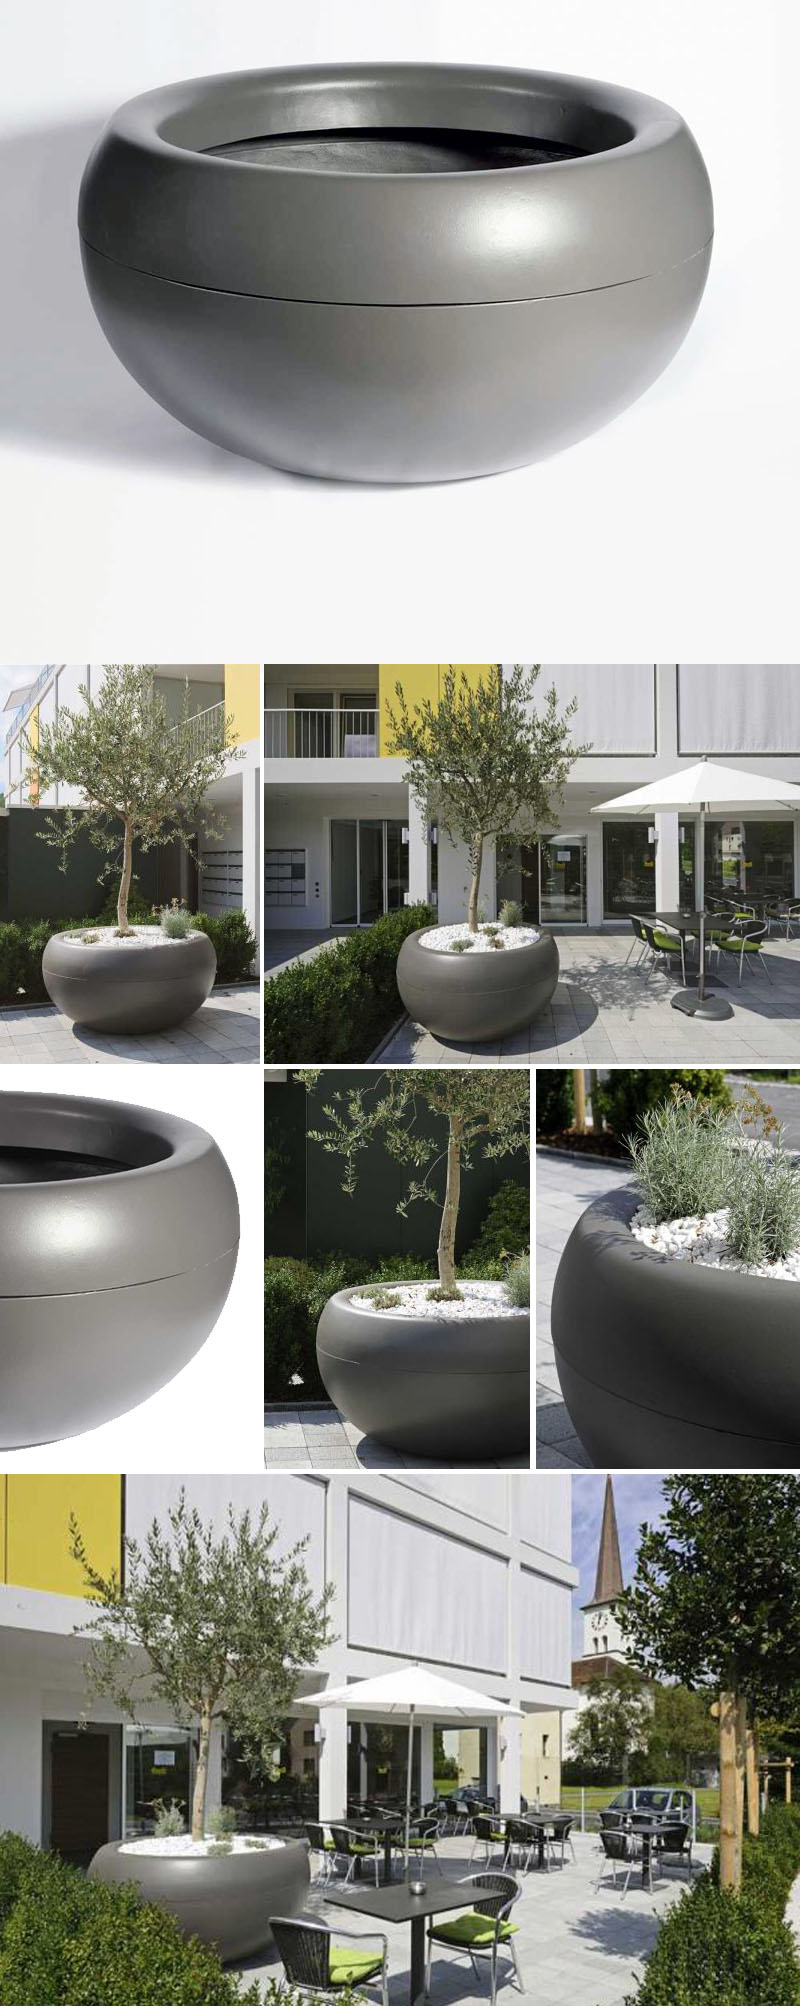 Chaise Aladin Aladin Extra Large Commericial Planter Outdoor Pots For Trees